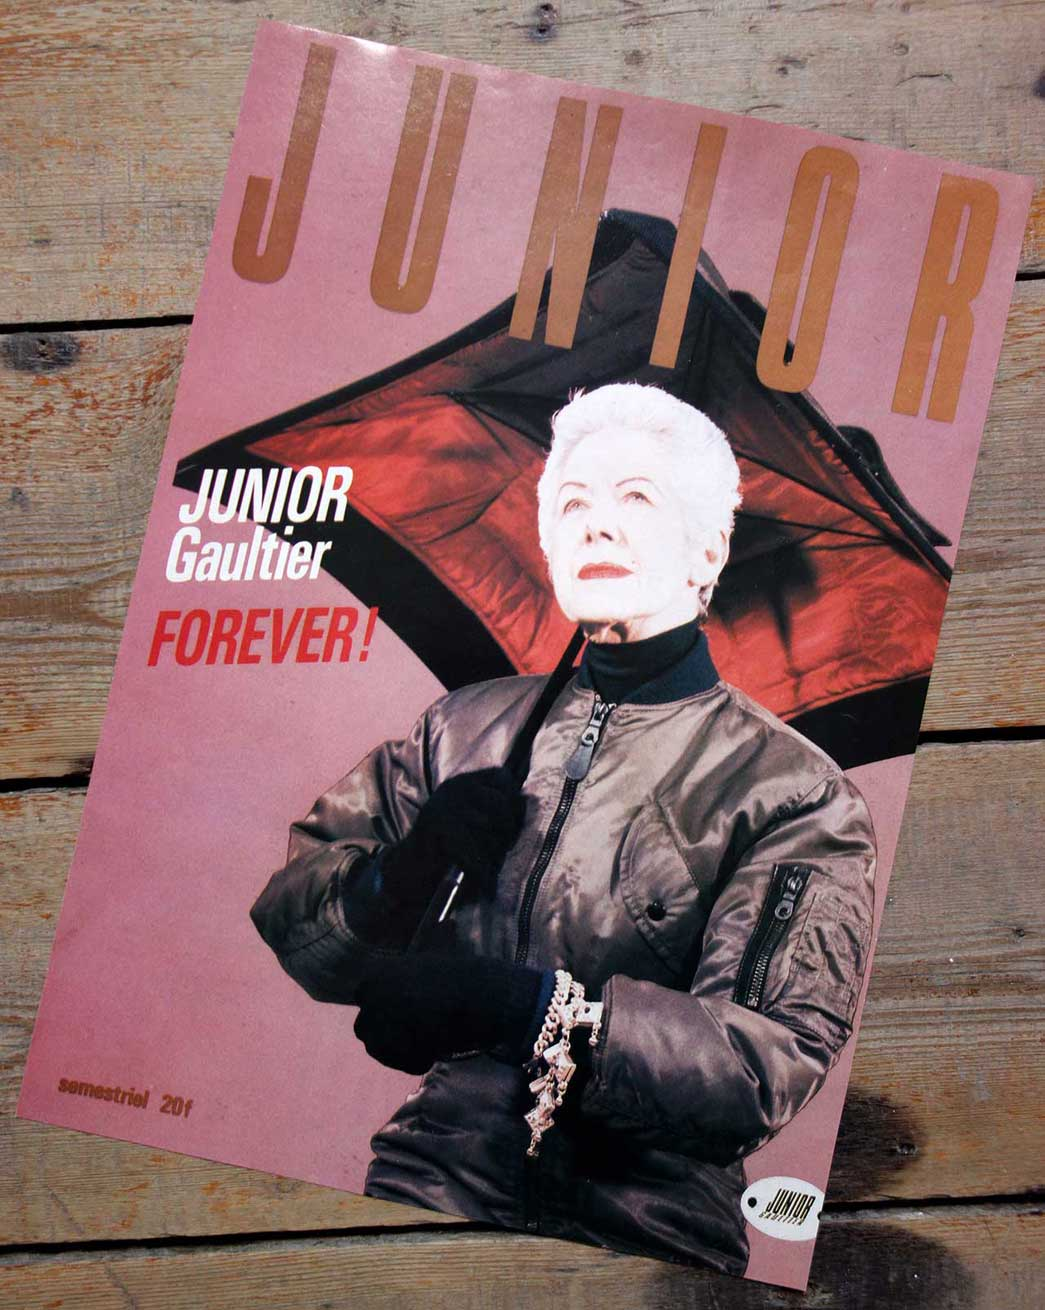 Magazine clipping saying Junior Gaultier Forever.